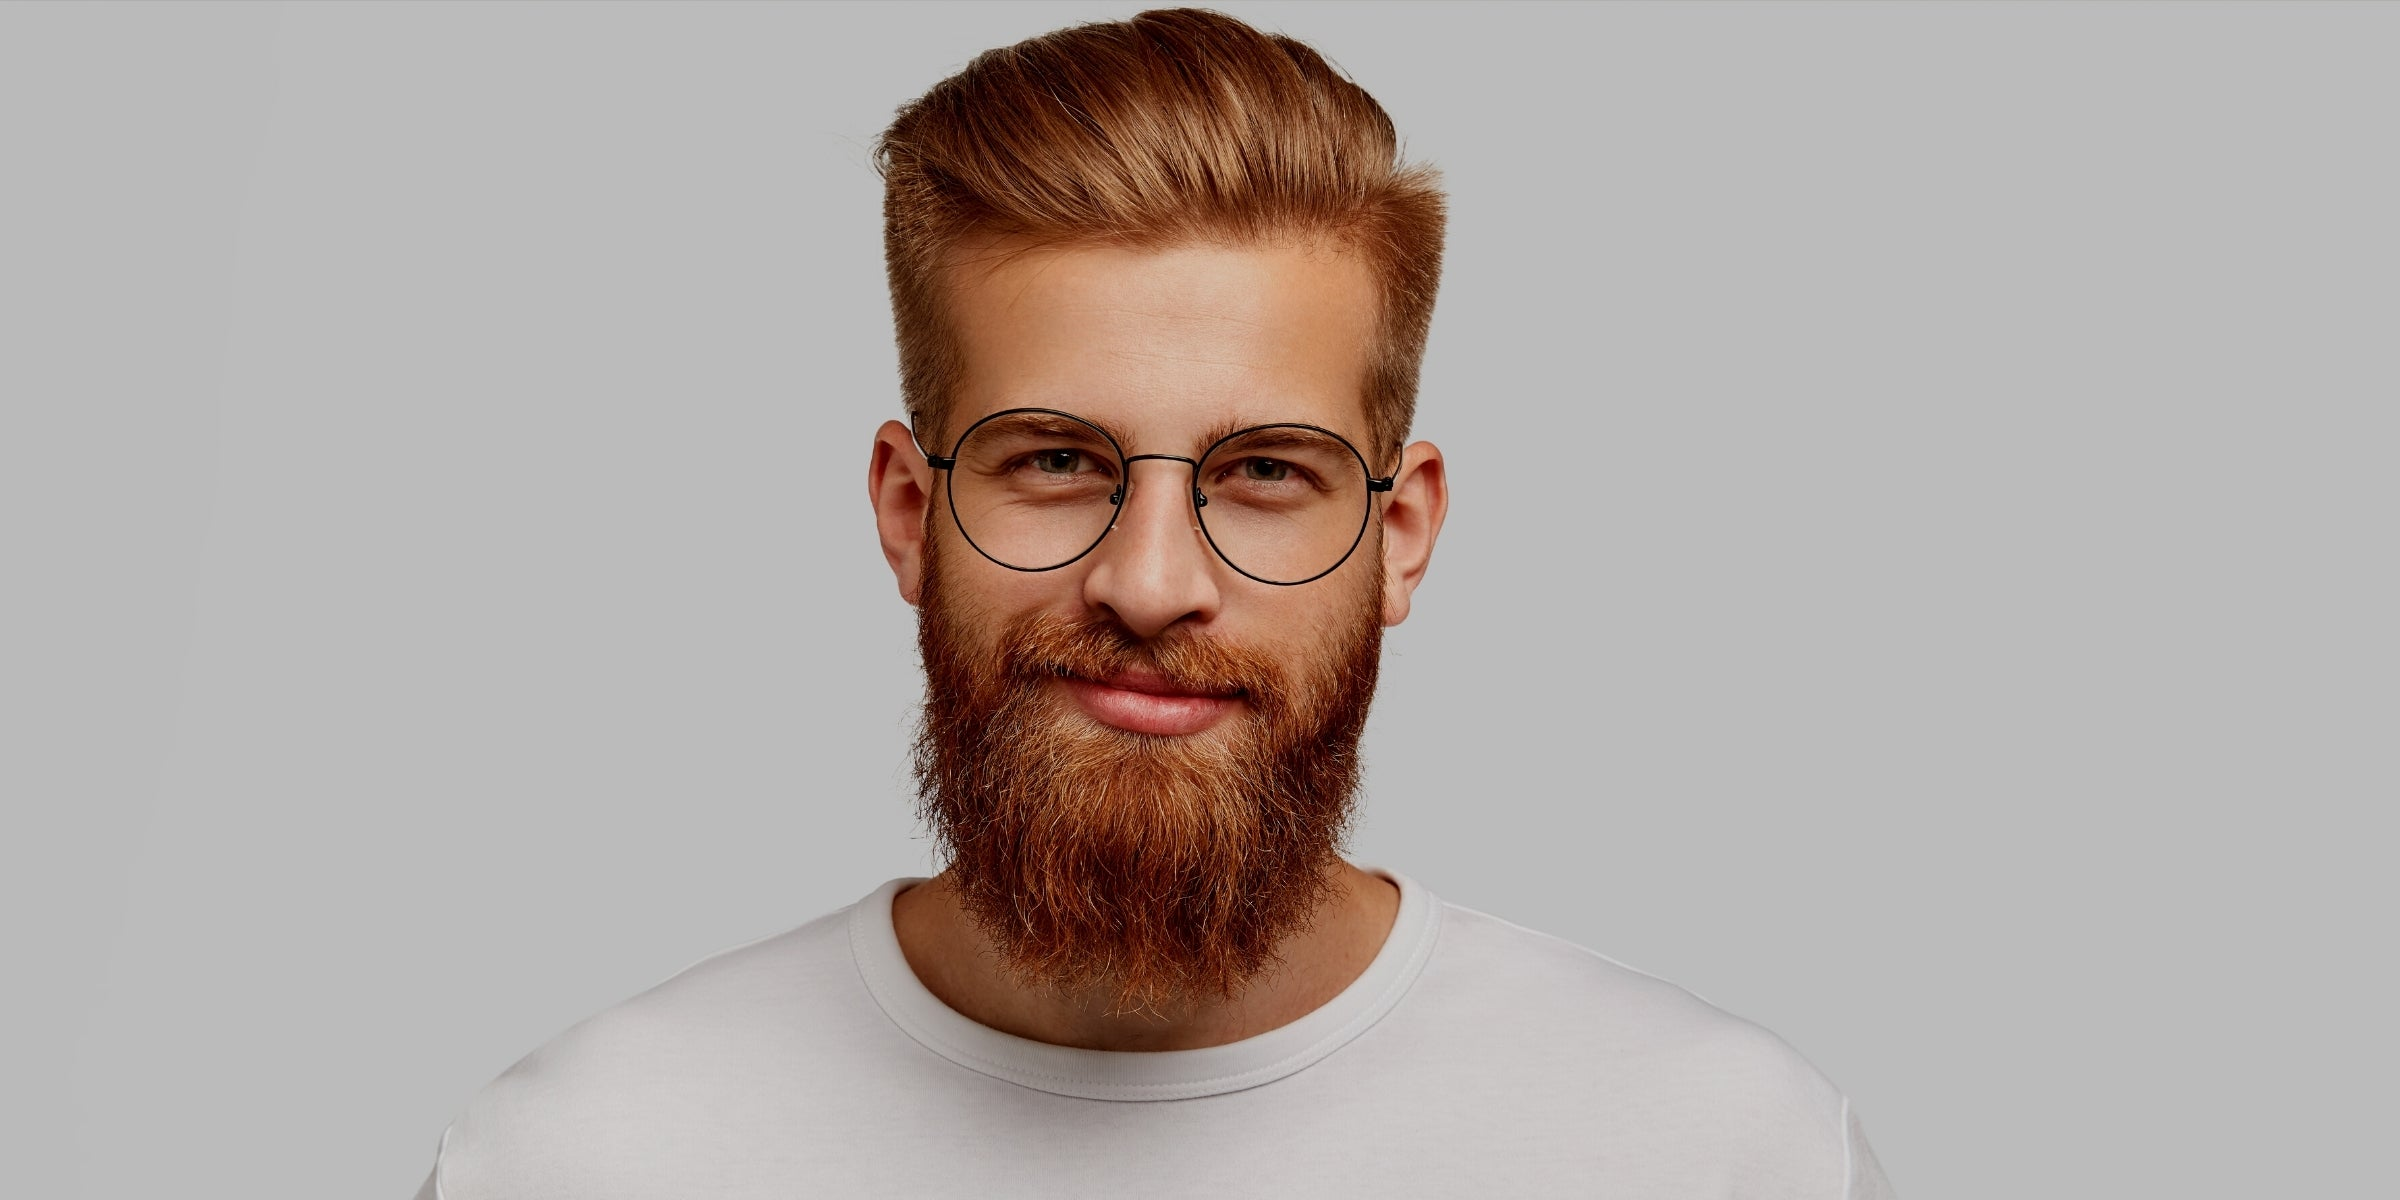 why are hair care tips for men important?